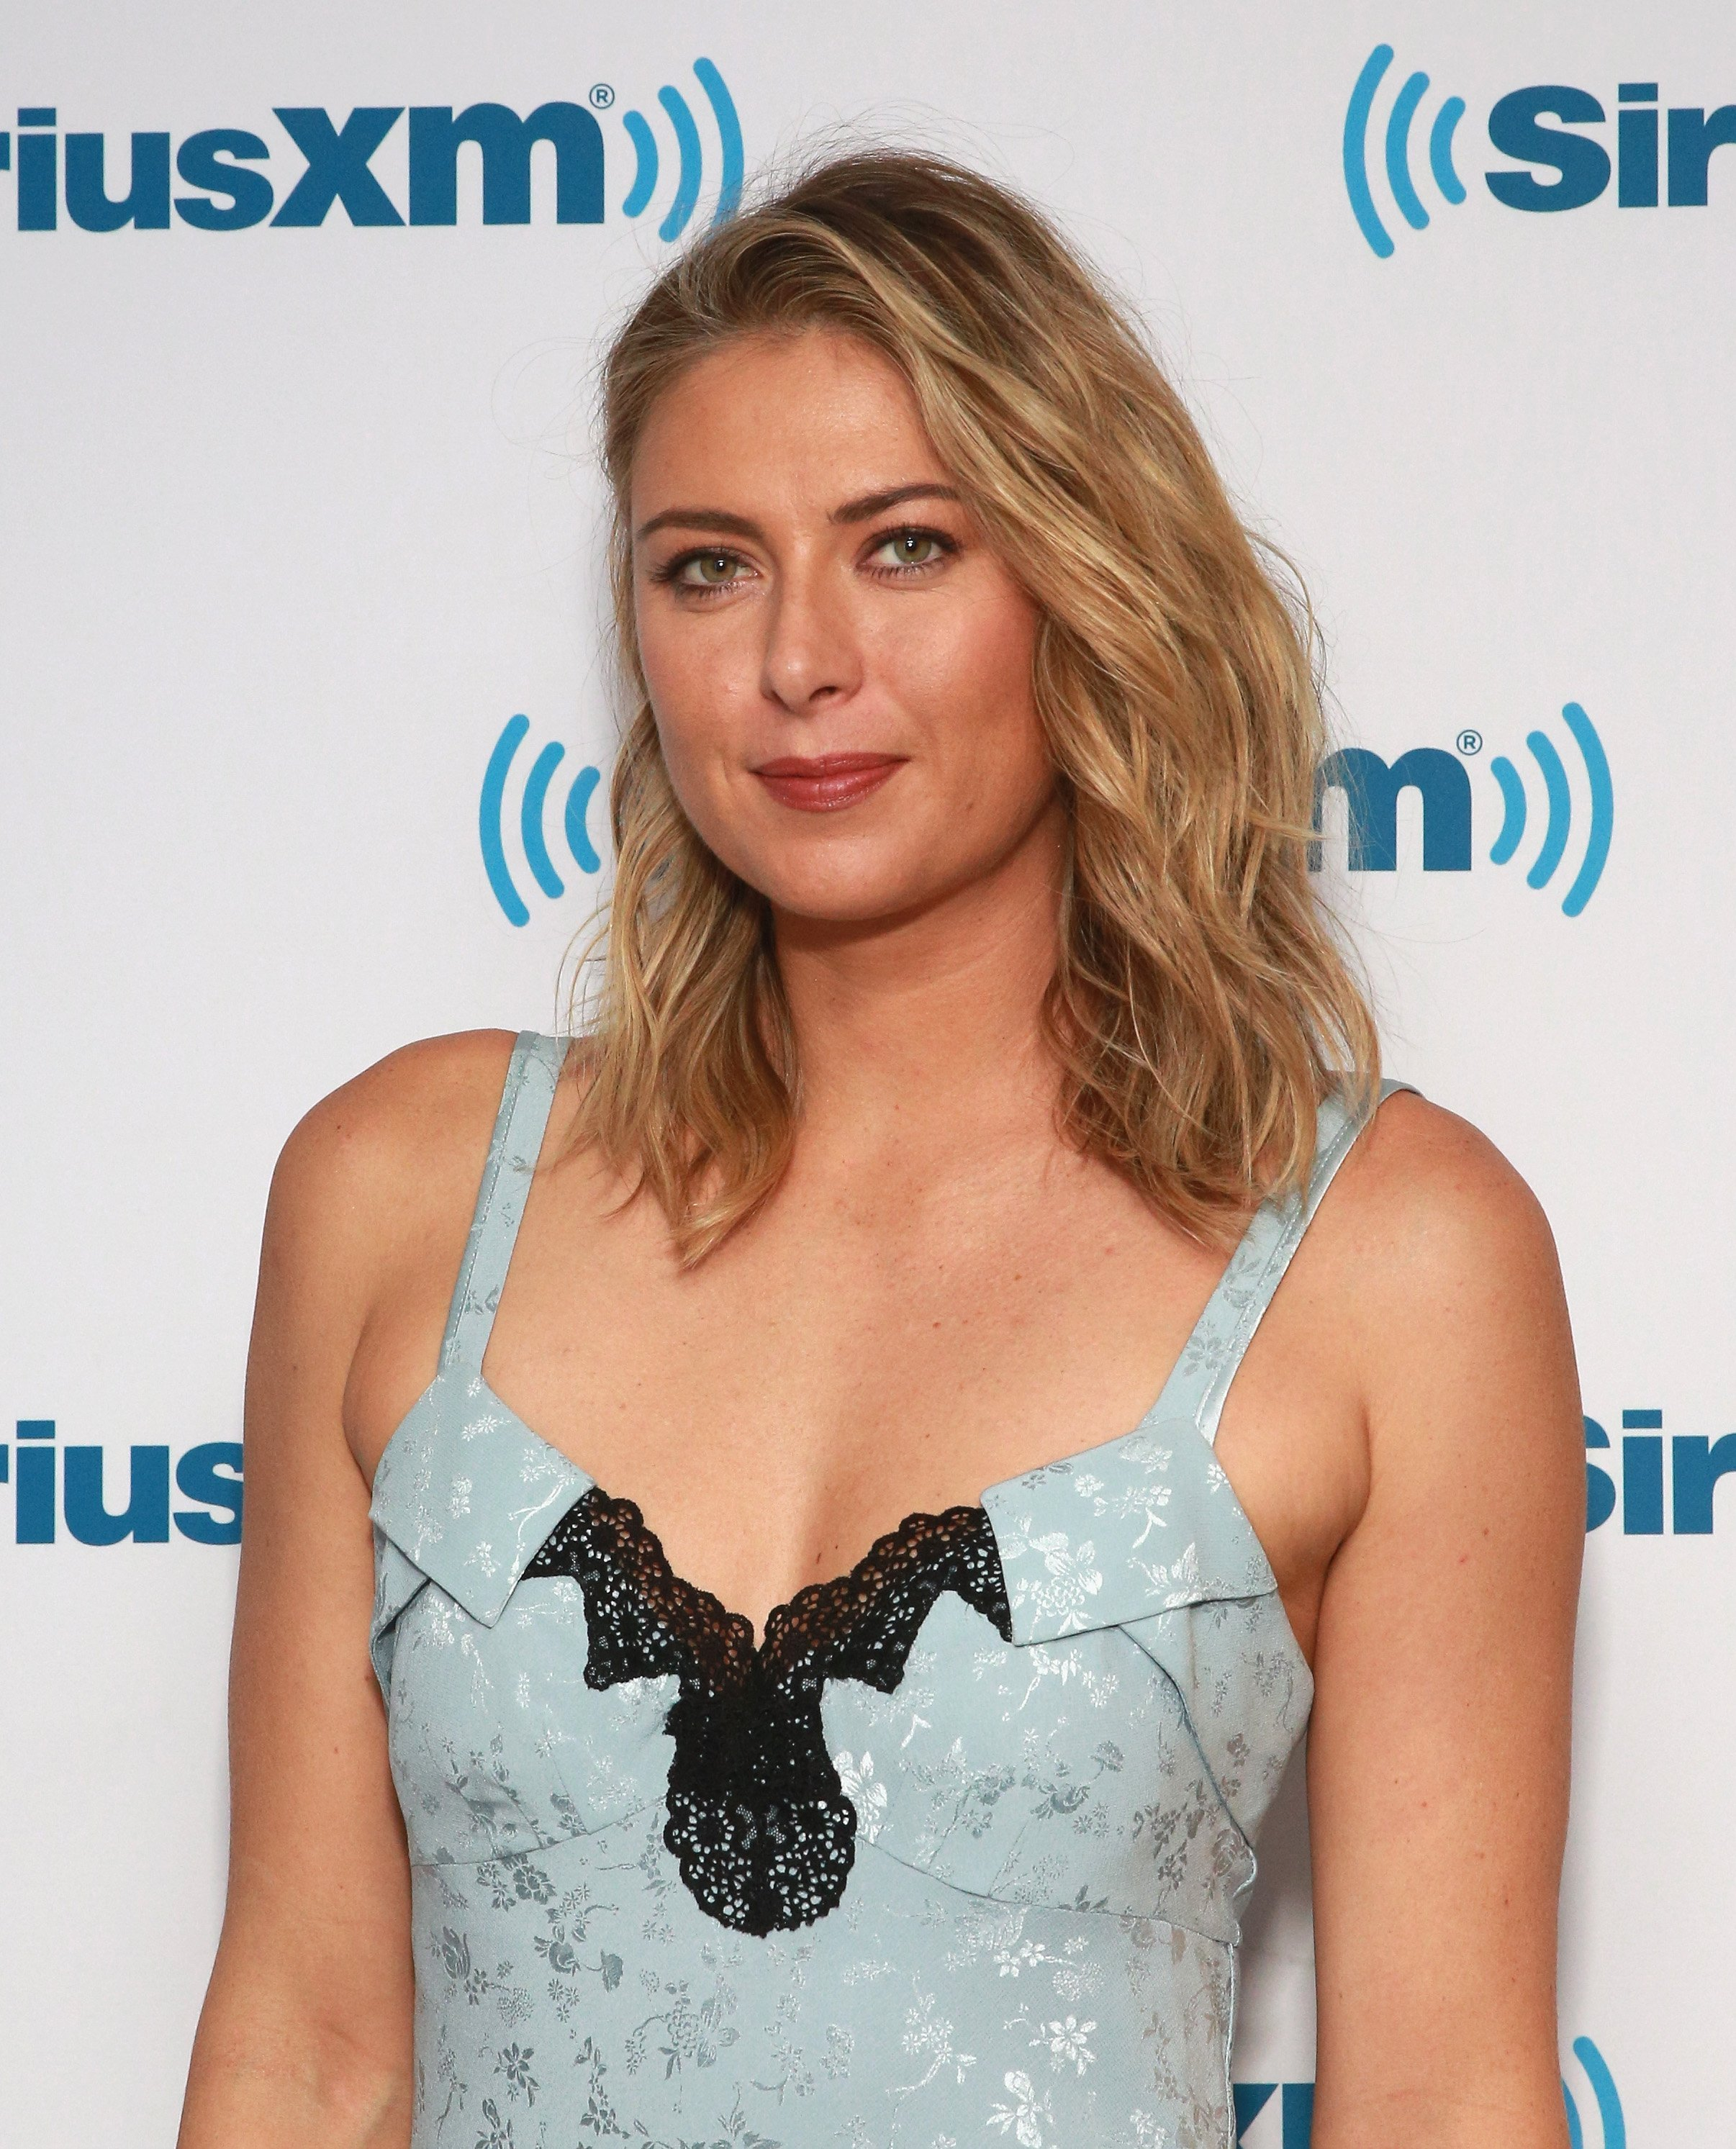 Maria Sharapova visits at SiriusXM Studios on September 13, 2017 in New York City| Photo: Getty Images